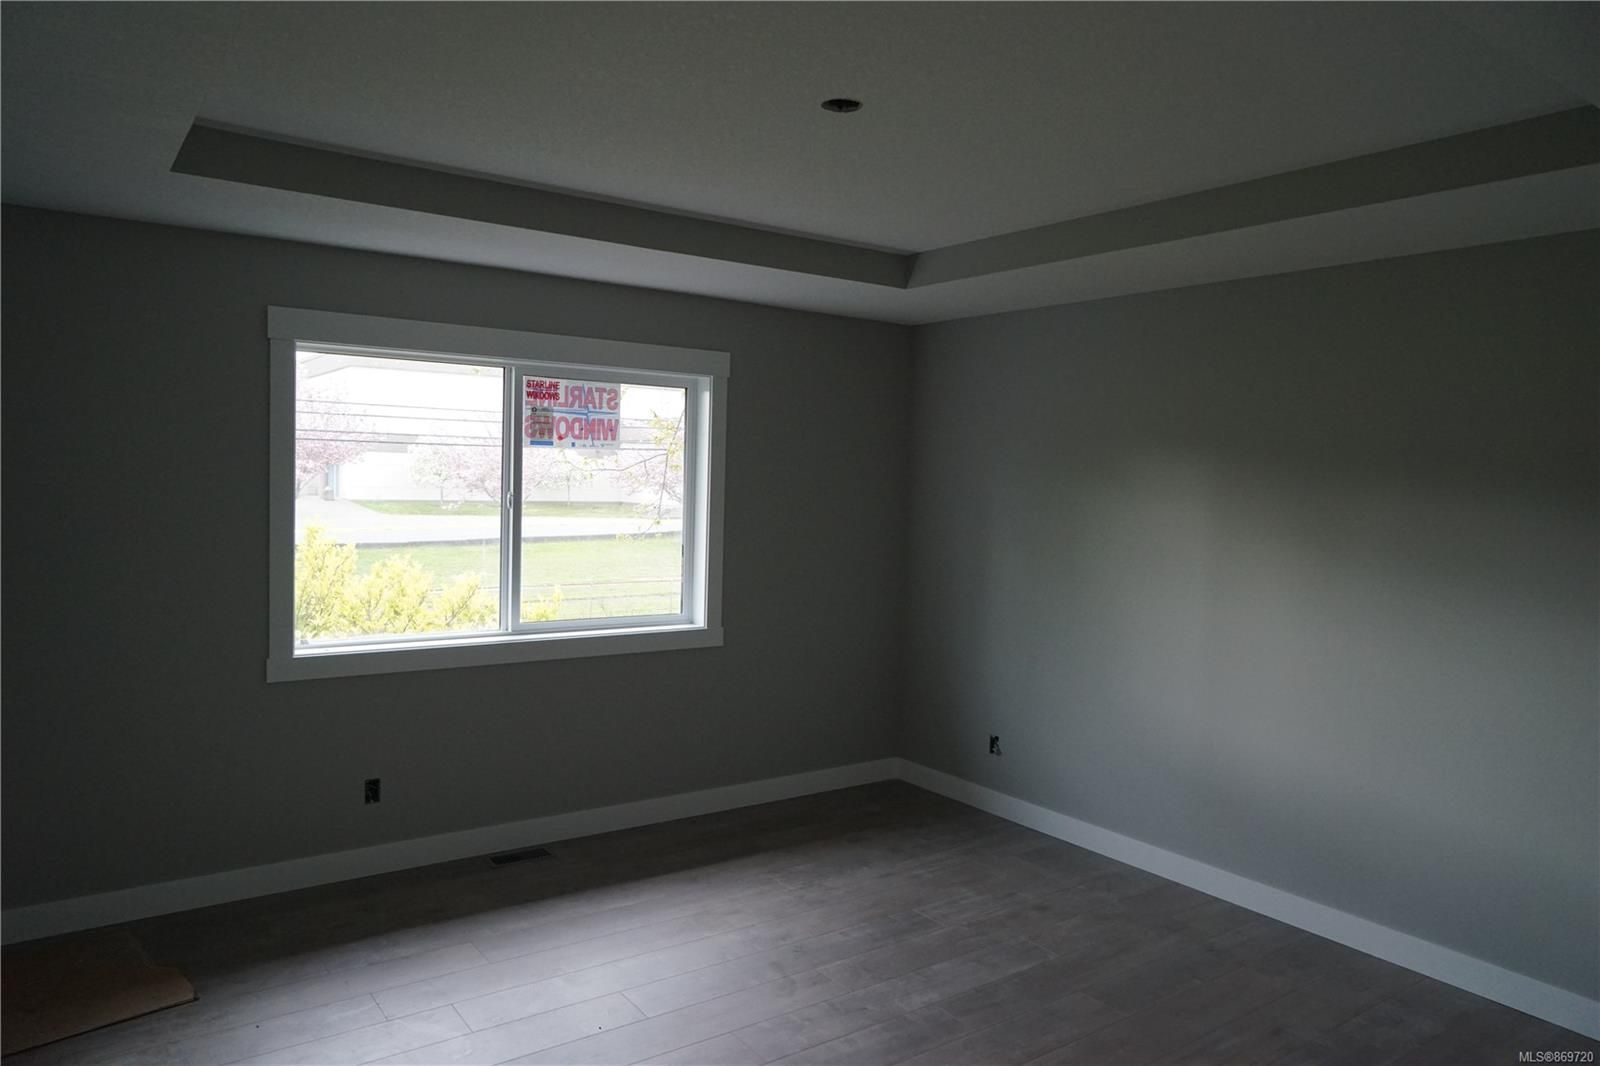 Photo 29: Photos: 770 Bruce Ave in : Na South Nanaimo House for sale (Nanaimo)  : MLS®# 869720